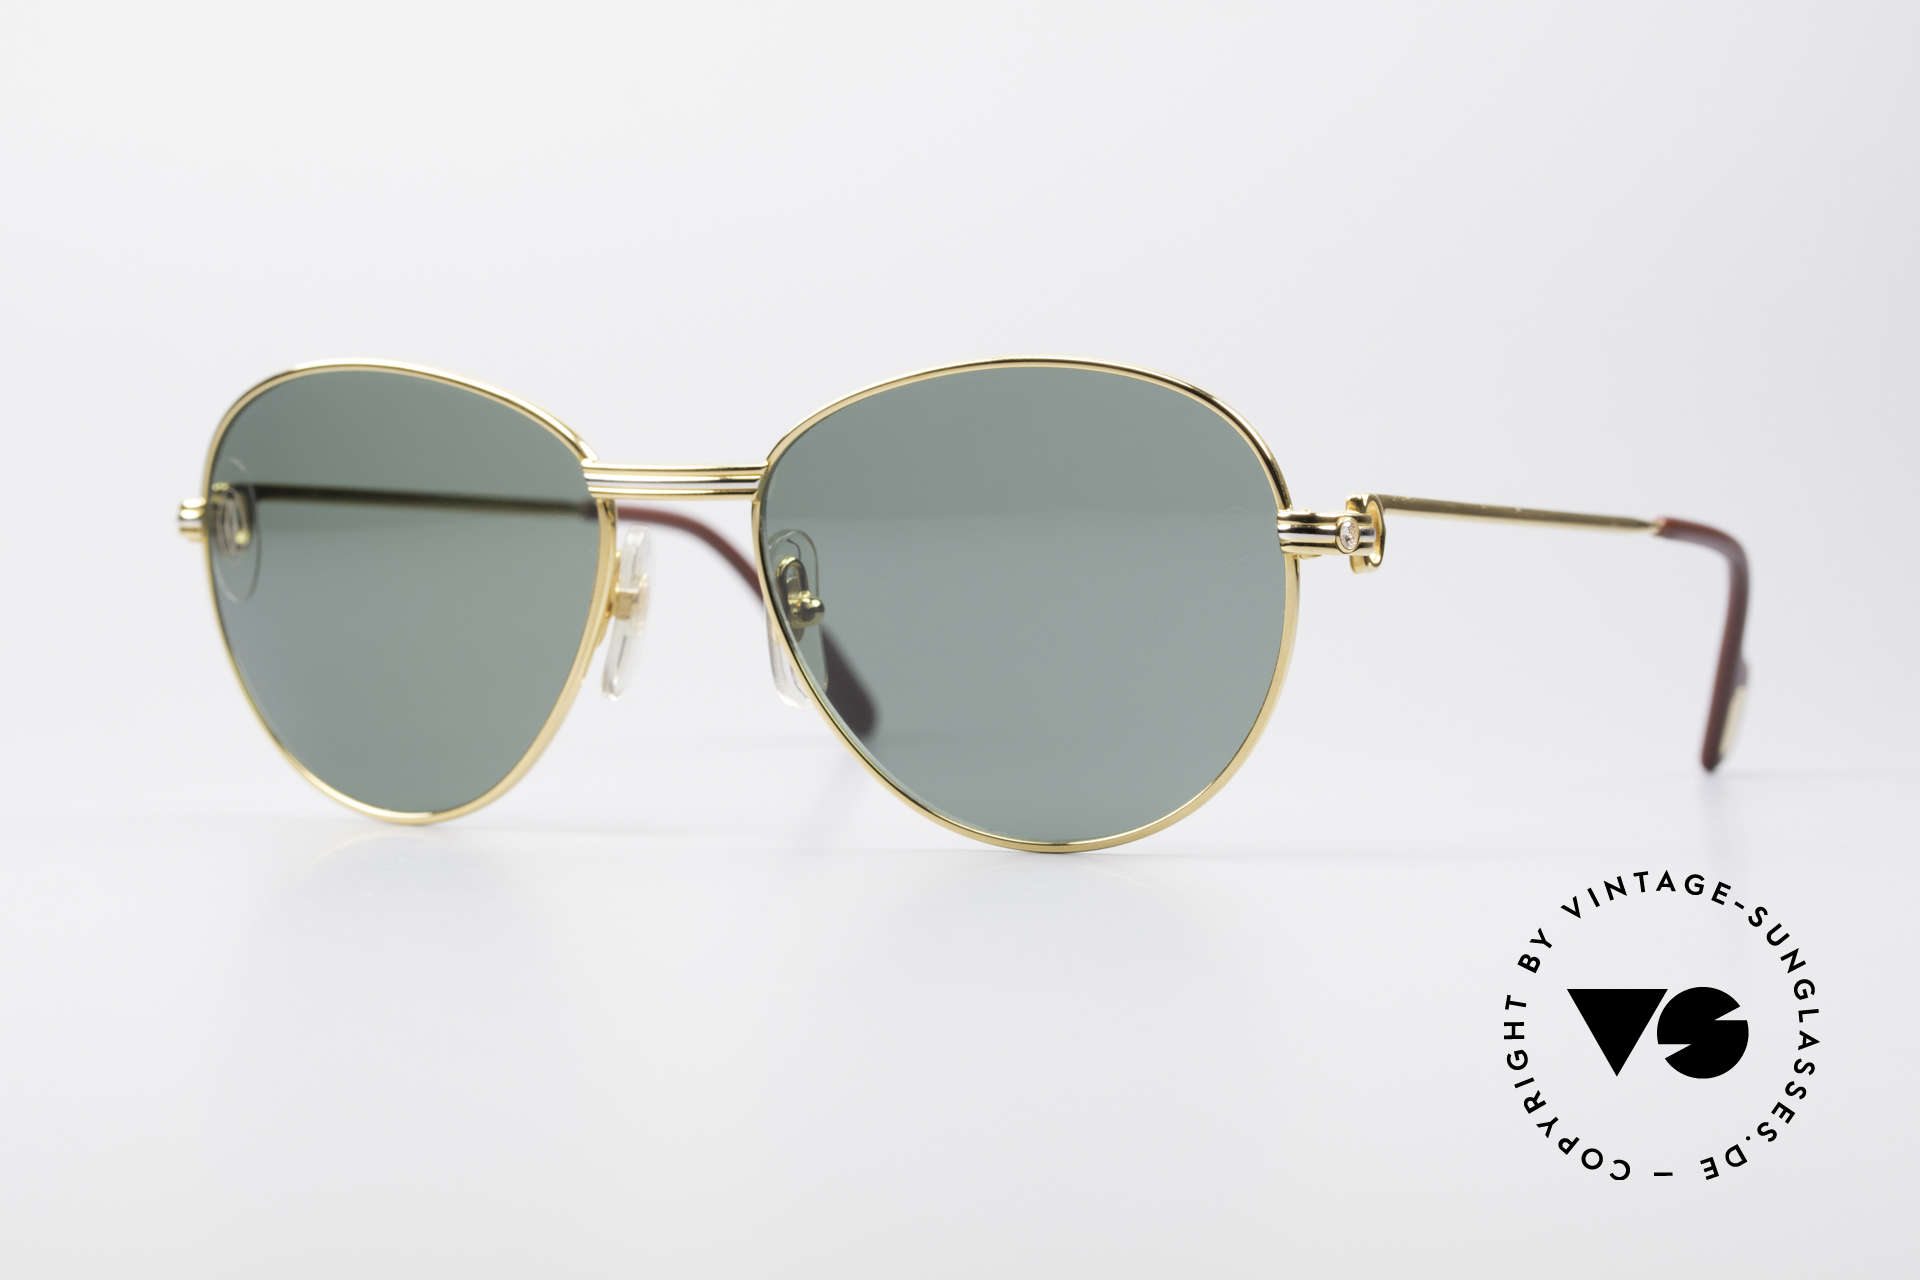 3058de0953 Sunglasses Cartier S Brillants 0